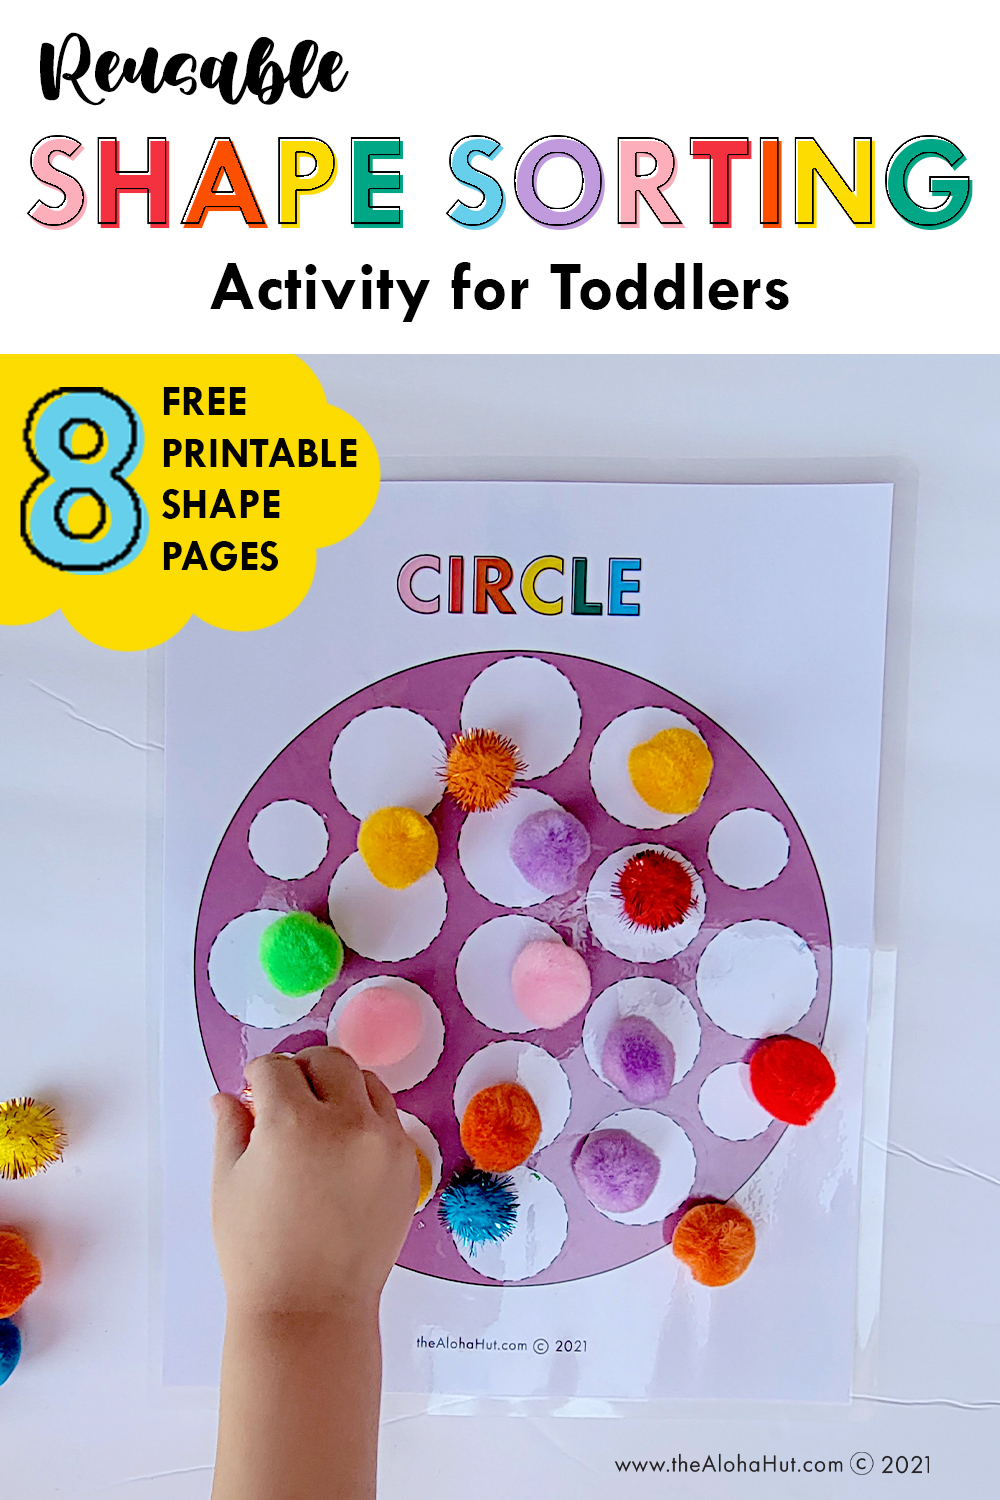 shape sorting activity for toddlers